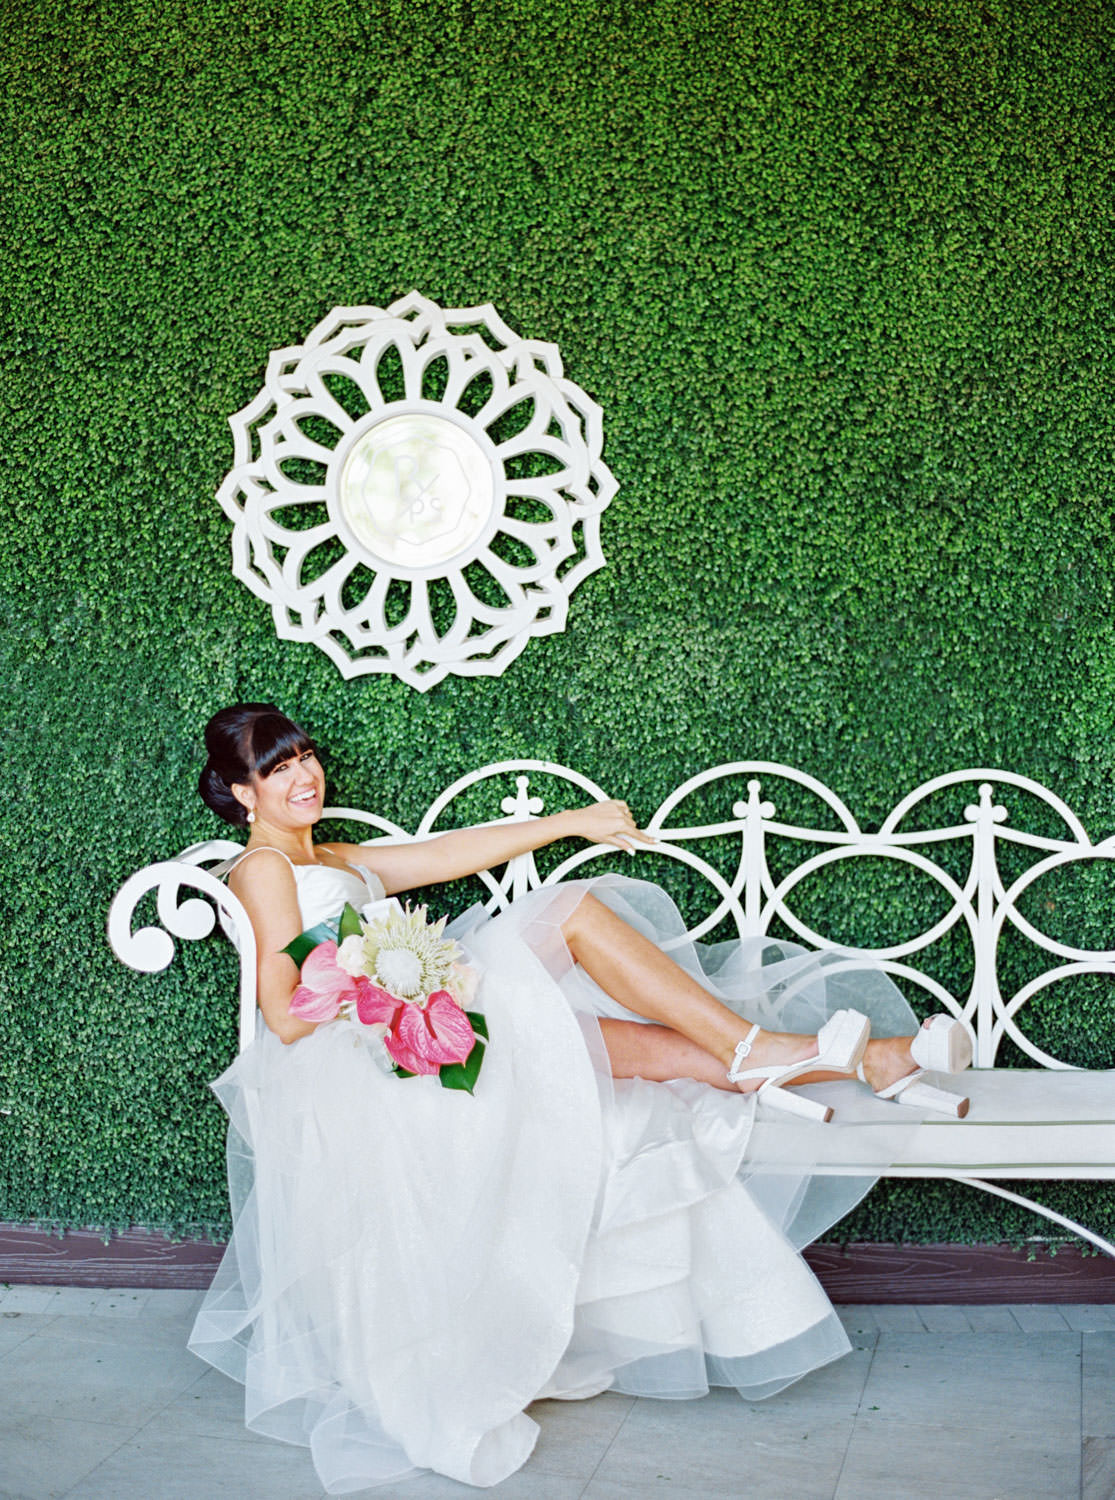 Bride in beehive updo wearing a Matthew Christopher gown lounging on a sofa outdoors in front of a greenery wall. Bridal bouquet with protea, pink anthurium, and palm leaves. Cavin Elizabeth Photography